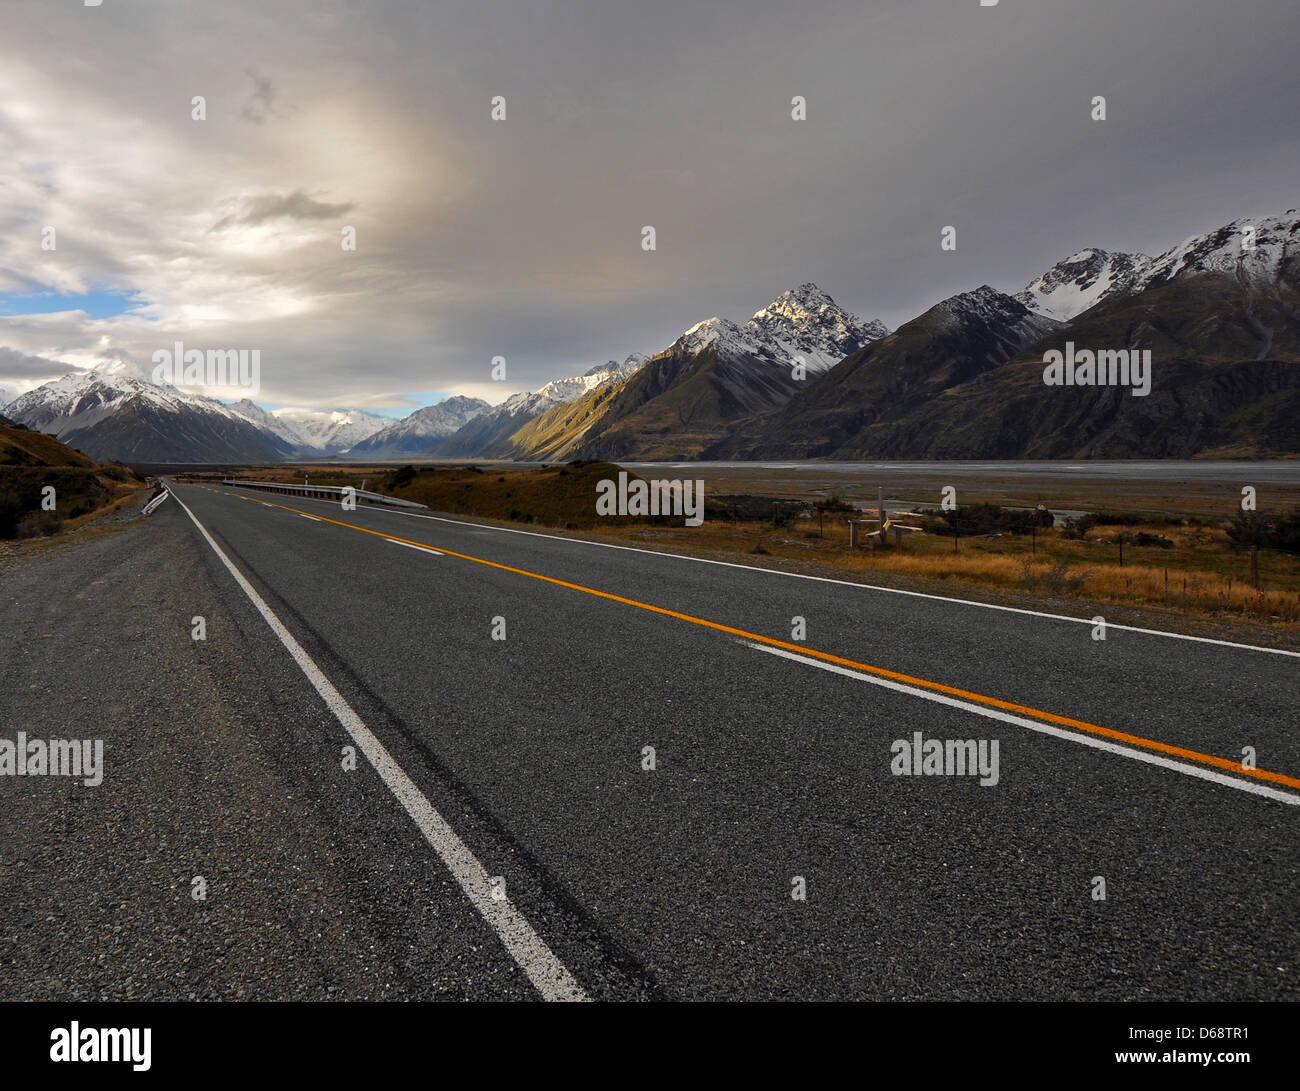 New Zealand South Island mountain and road landscape - Stock Image